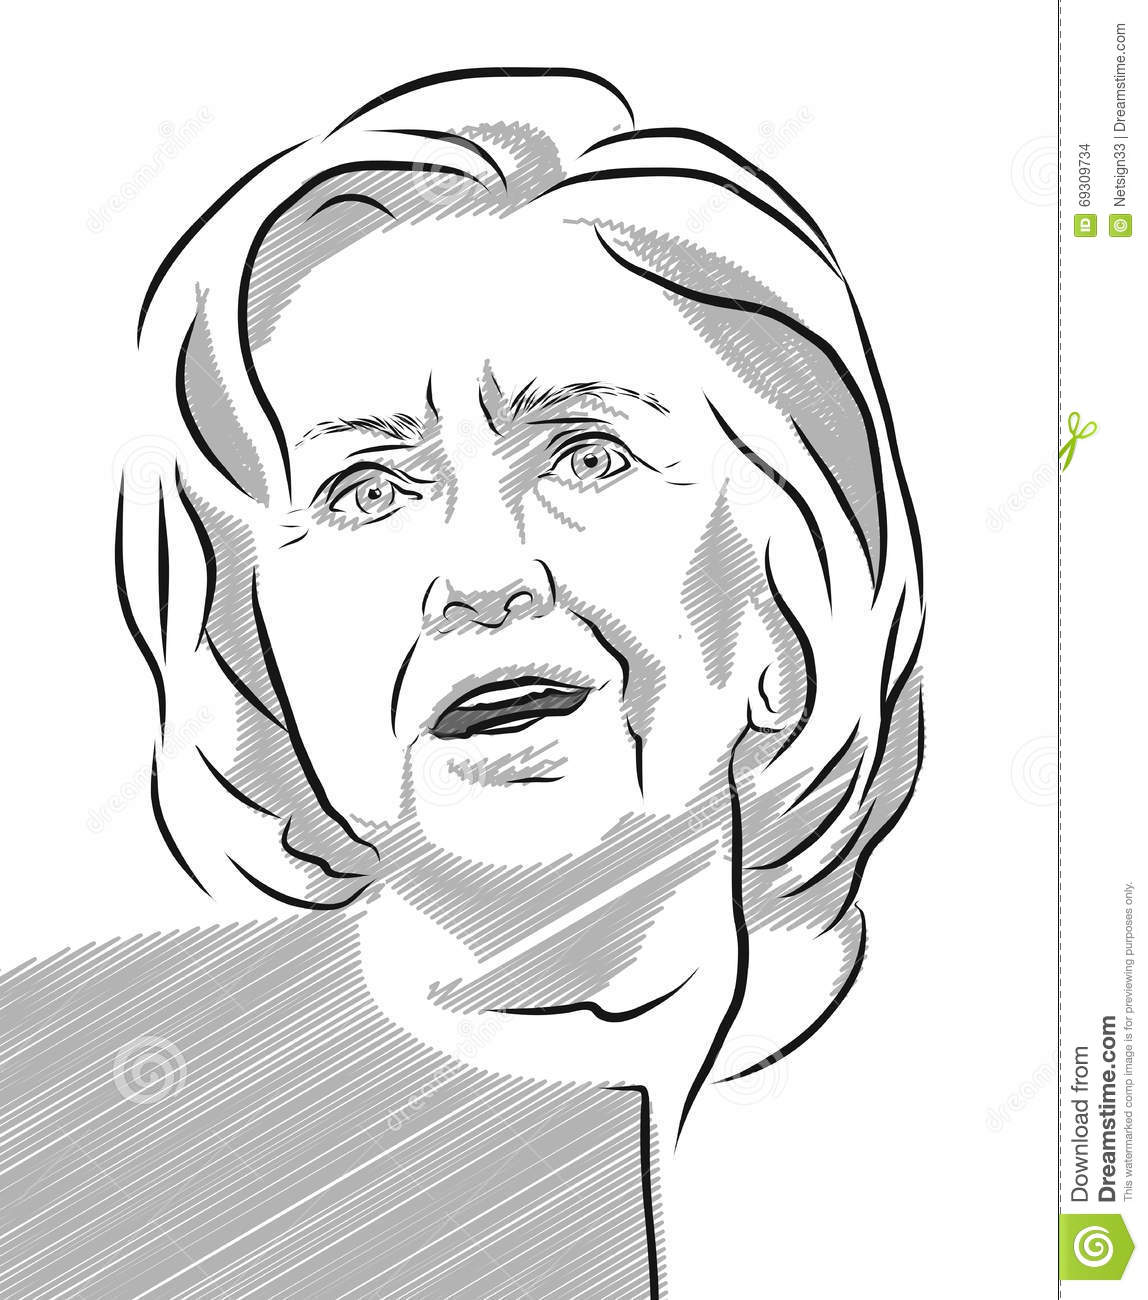 Hillary Clinton Portrait Vetora Outline Illustration